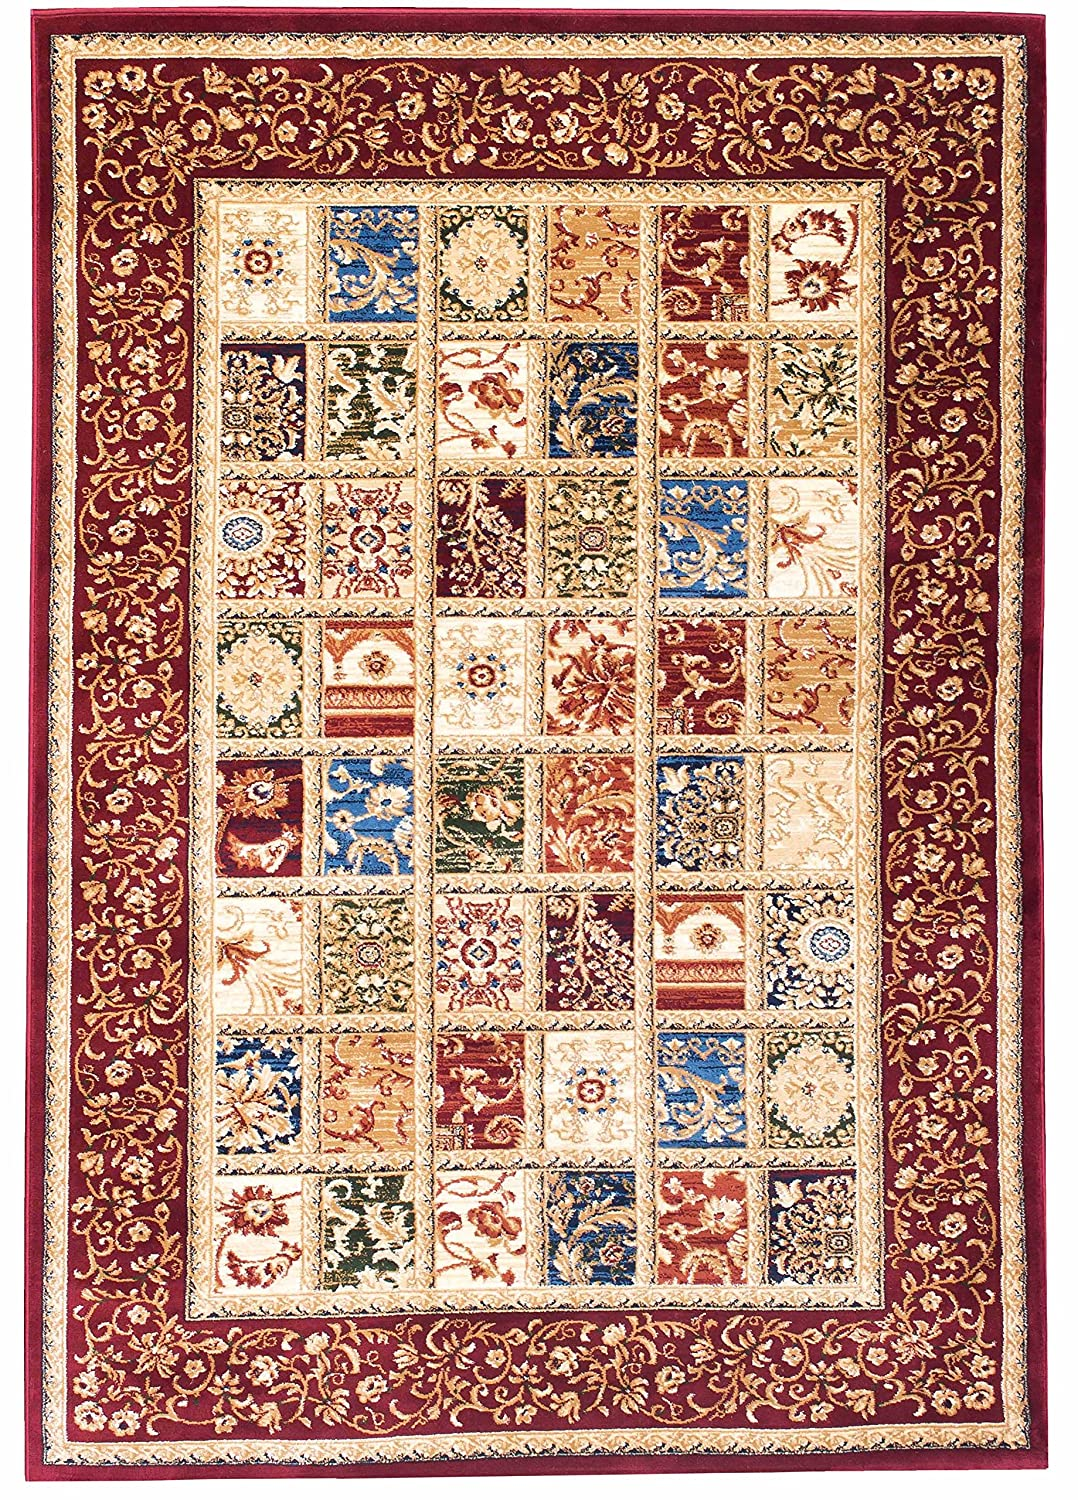 Kerman Fantasy Turkish Collection Red Area Rug 3x5 AG Home 04374A_BCV55_BUR-BUR 3x5